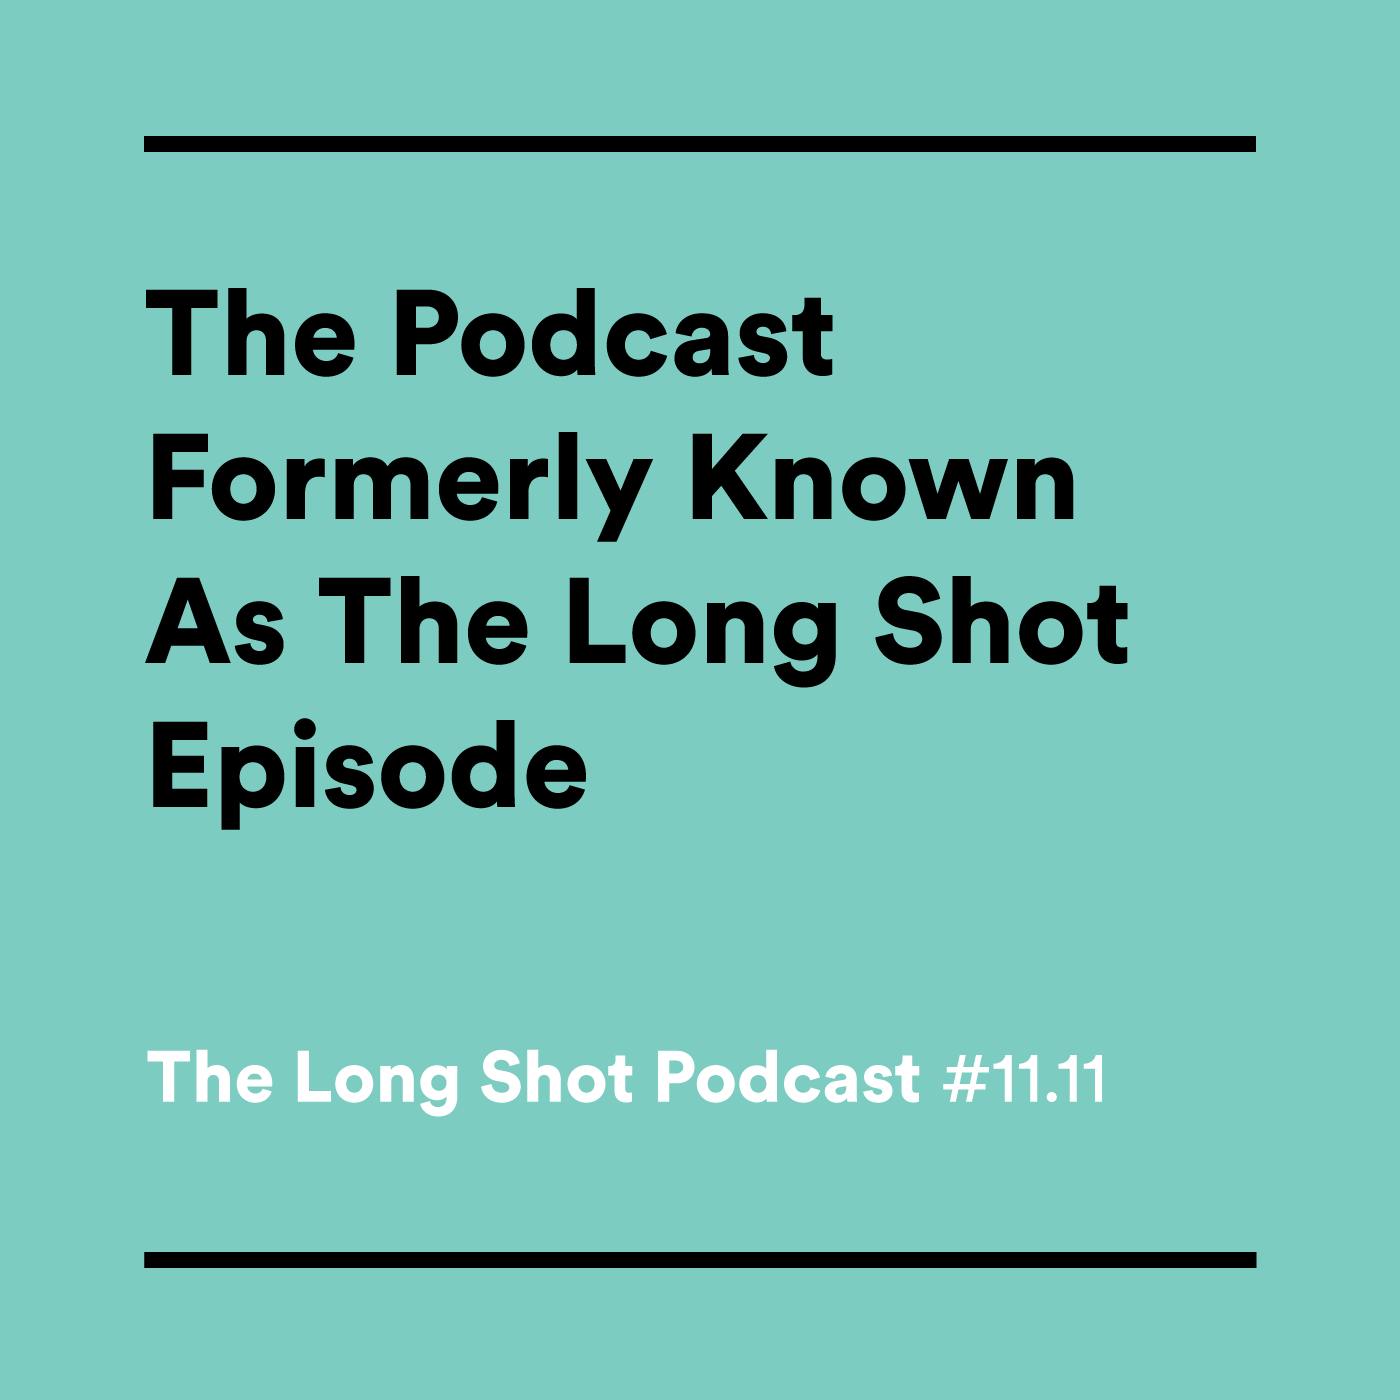 #11.11 The Podcast Formerly Known As The Long Shot Episode